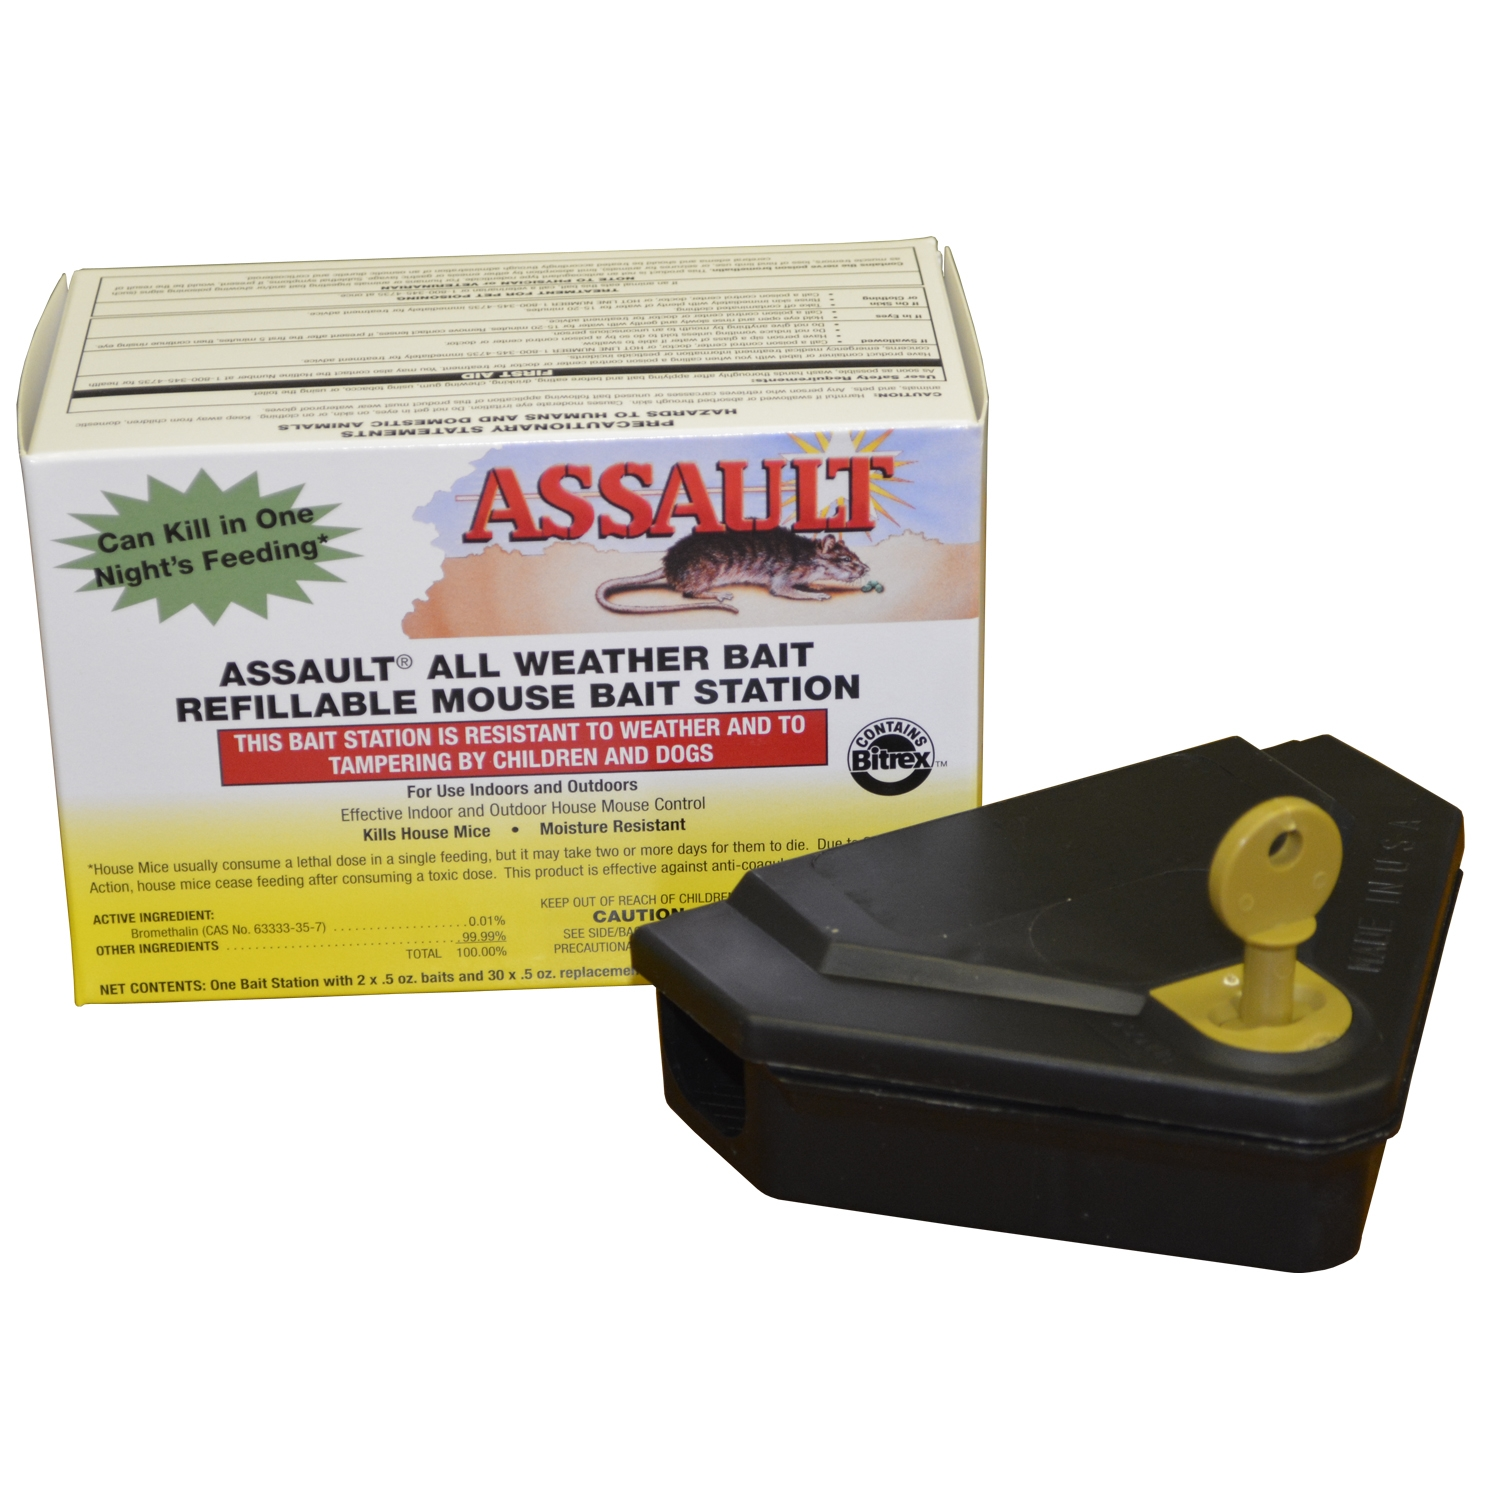 Assault Refillable Mouse Bait Station